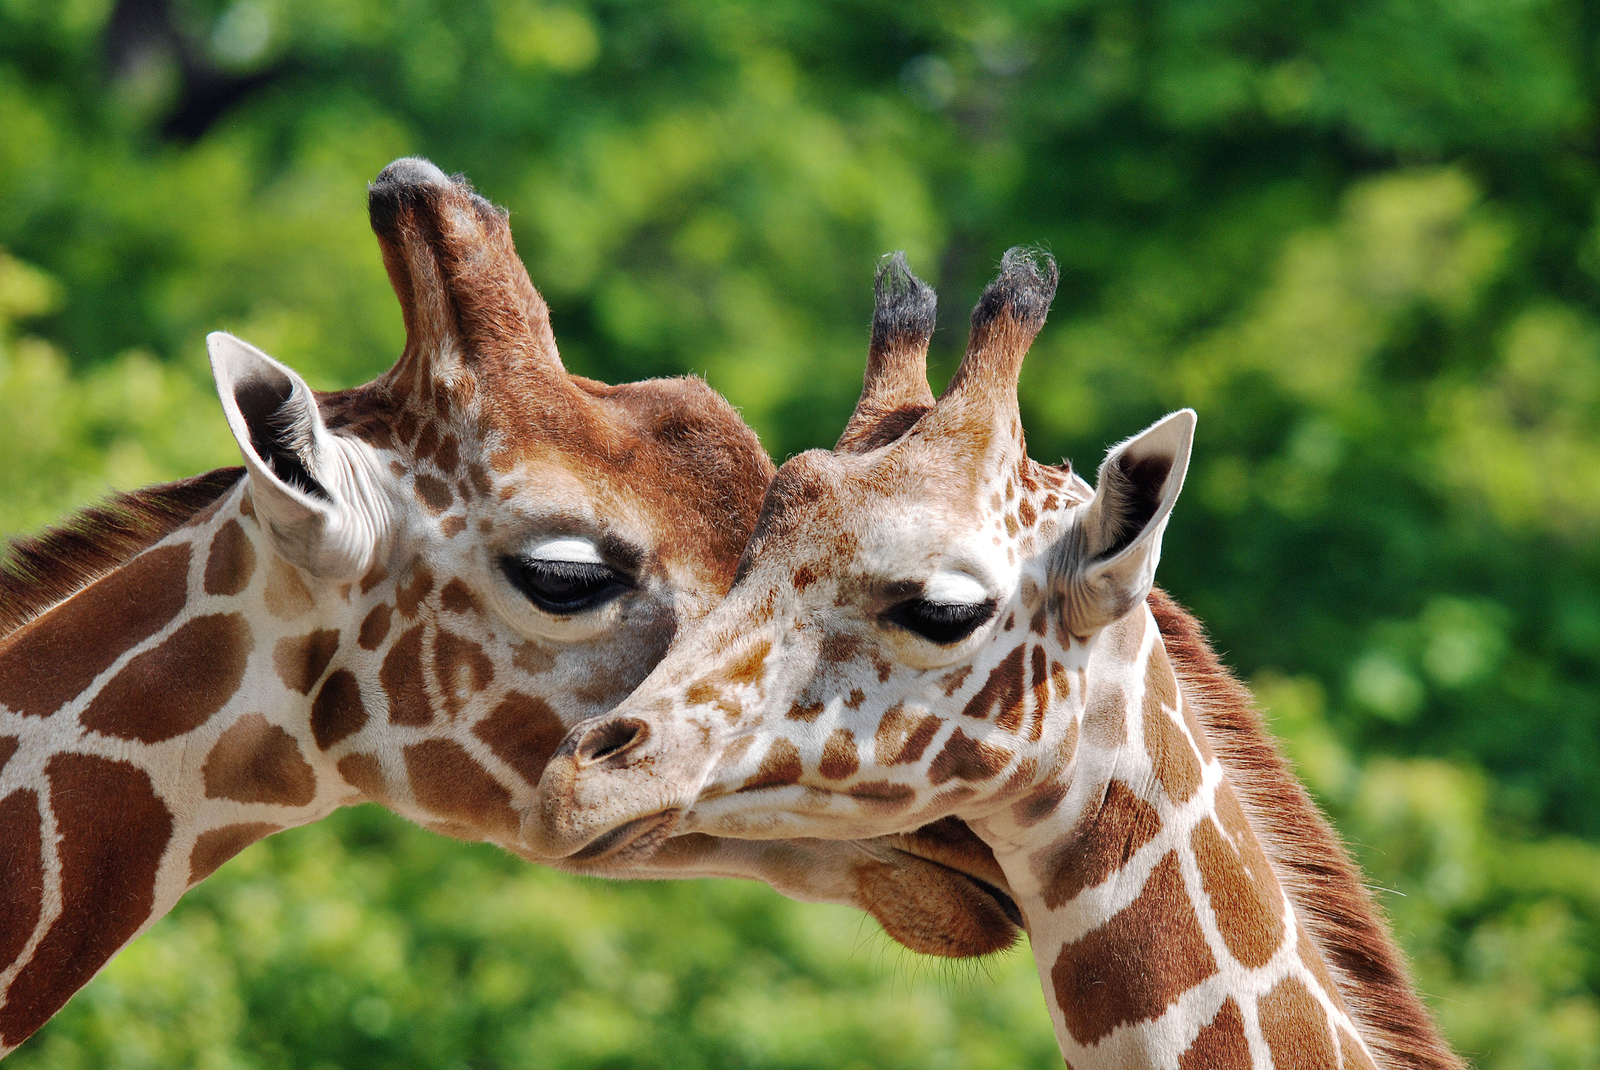 Kid Friendly Activities in Dallas: Dallas Zoo